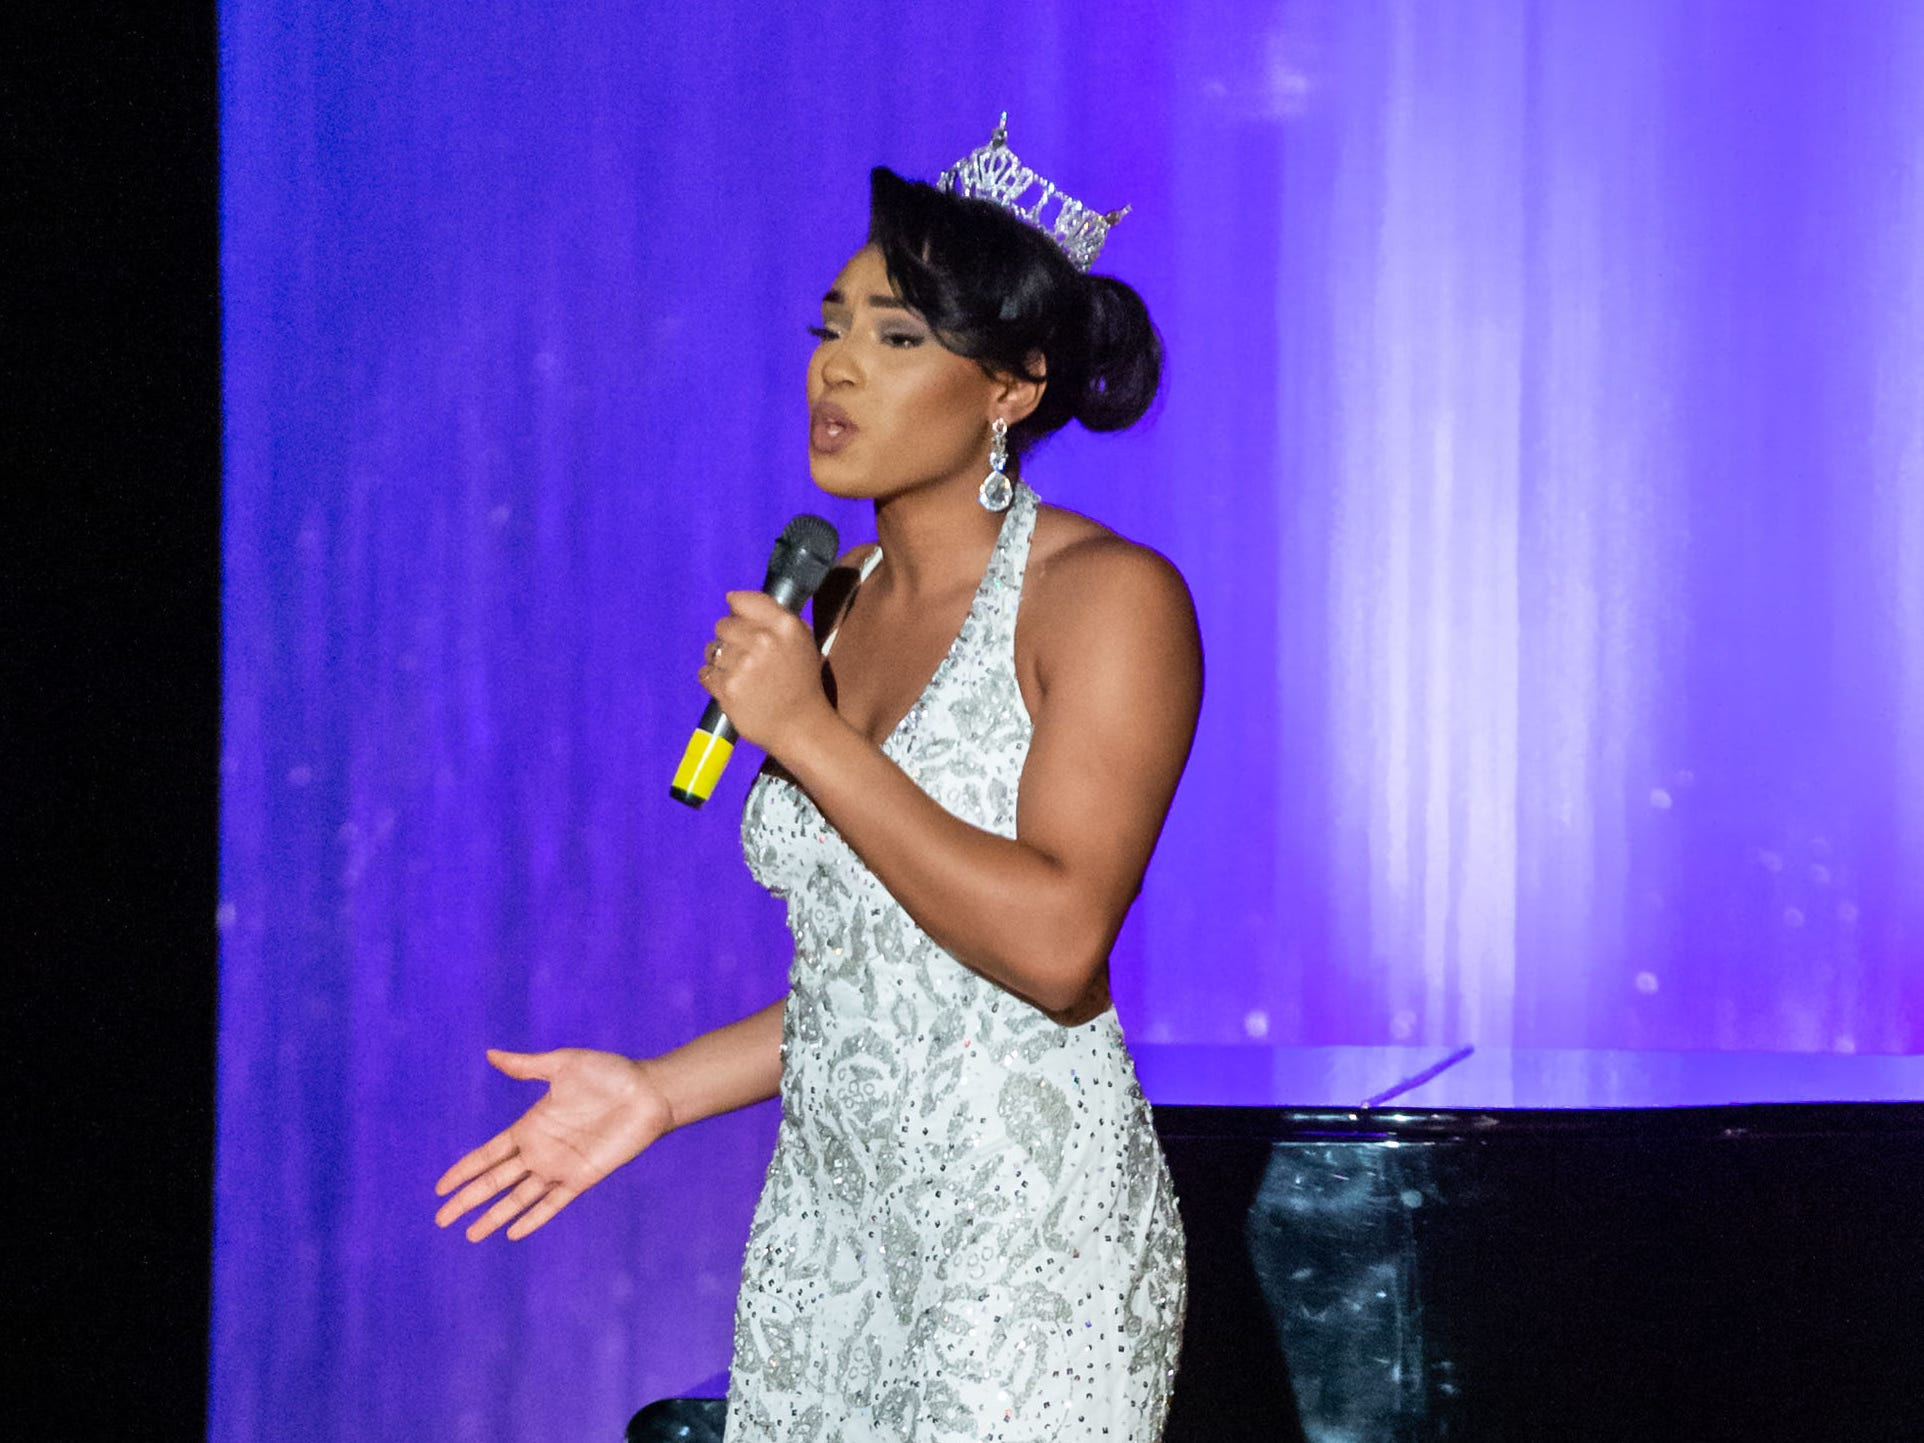 Alexa Biami, Miss St. Francis 2018, performs a song during the 55th annual Miss St. Francis Scholarship Competition at St. Thomas More High School on Saturday, Feb. 2, 2019.